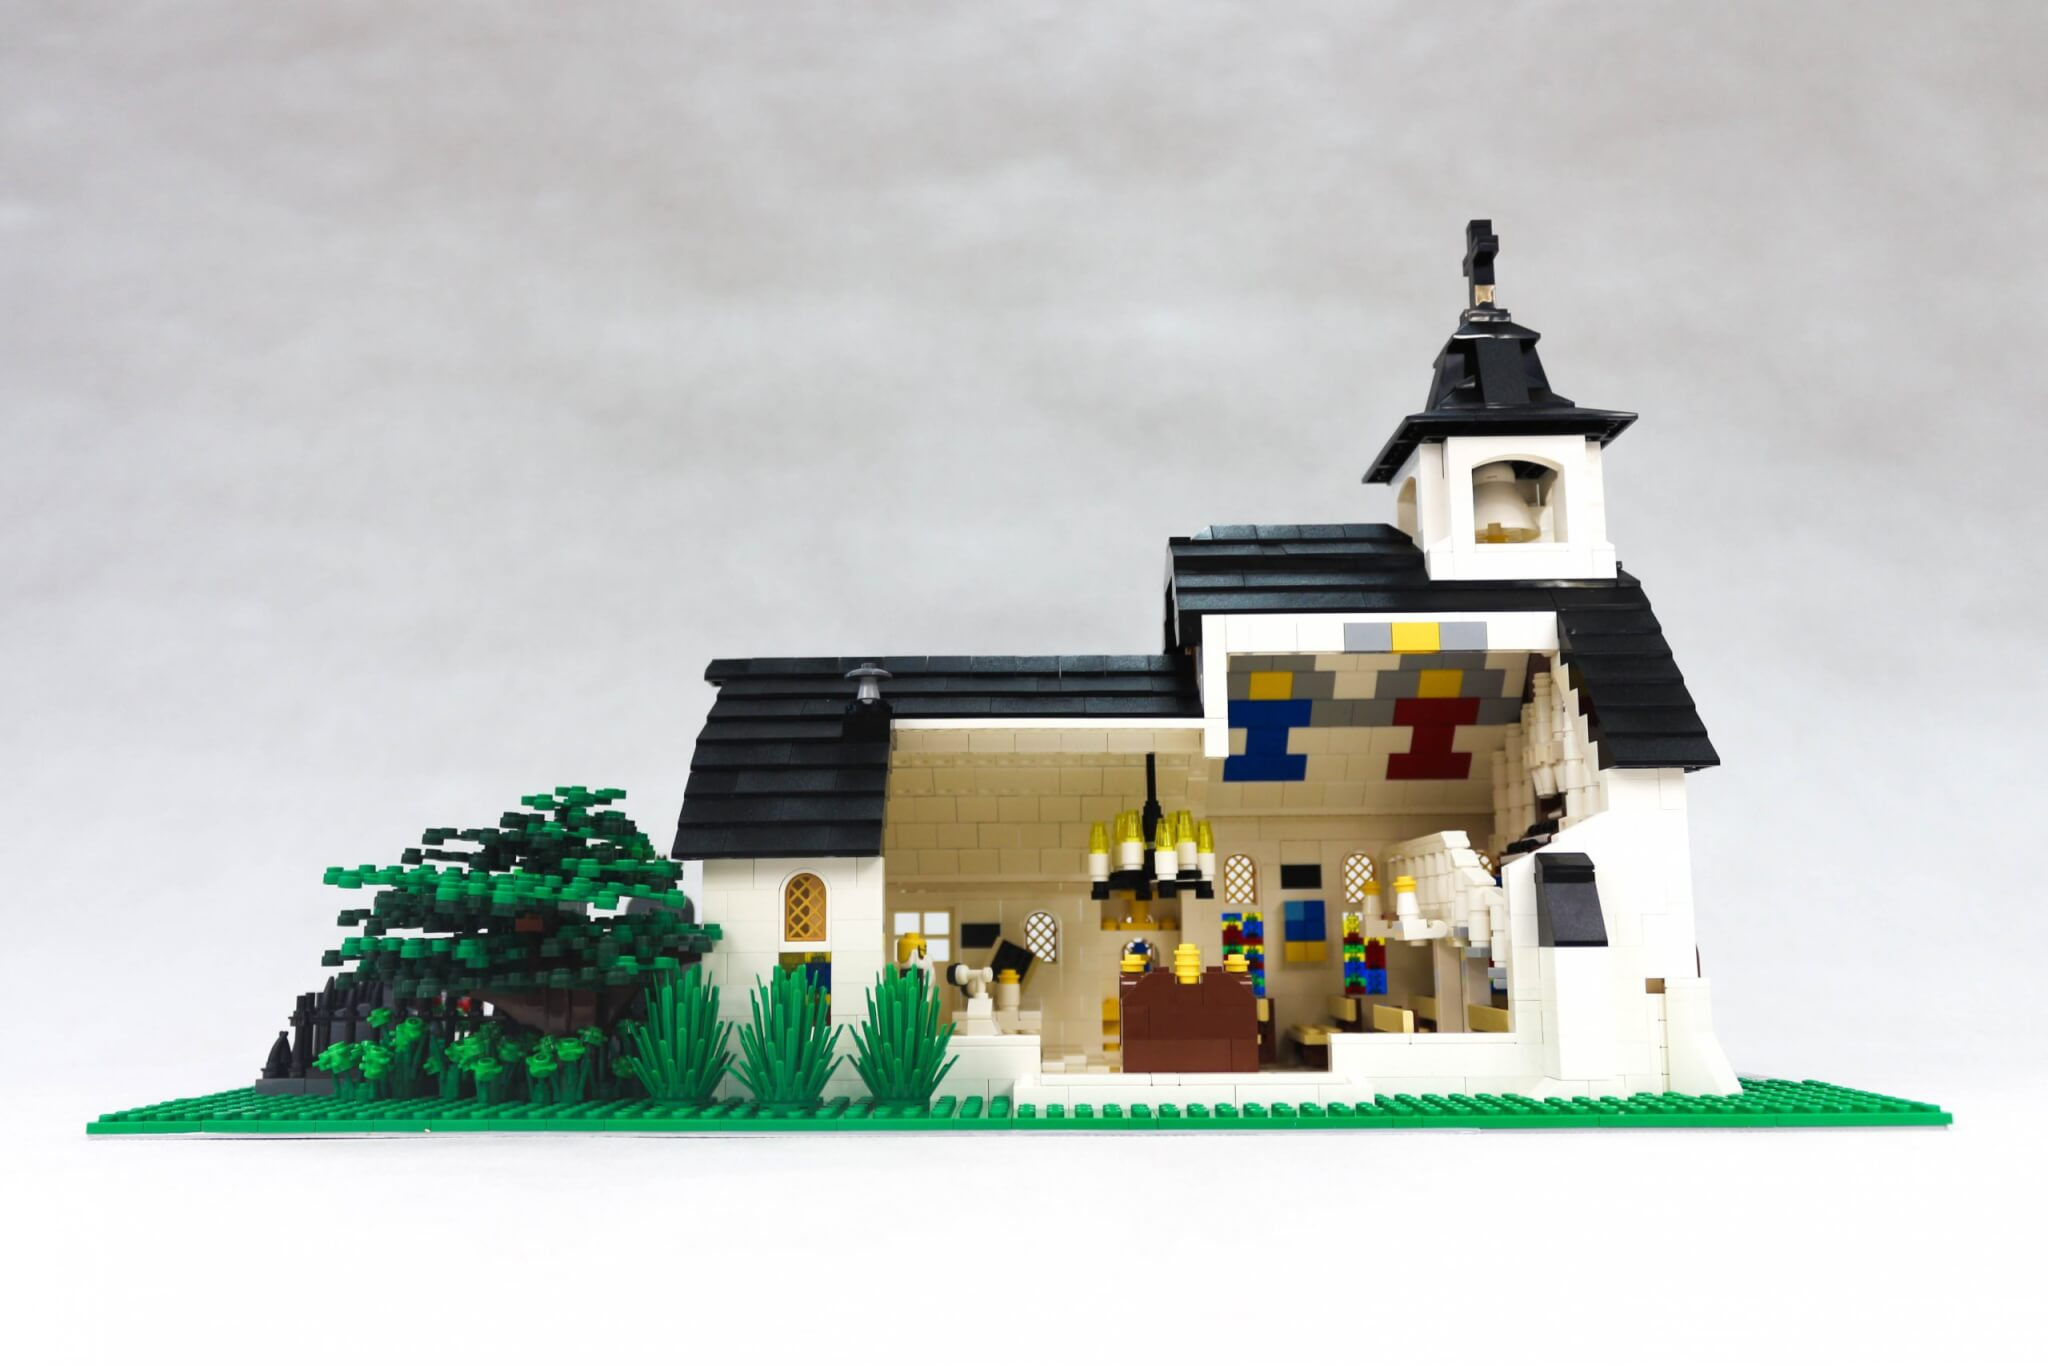 lego-building-bricks-make-your-own-lego-set-custom-lego-models-scaled.jpg